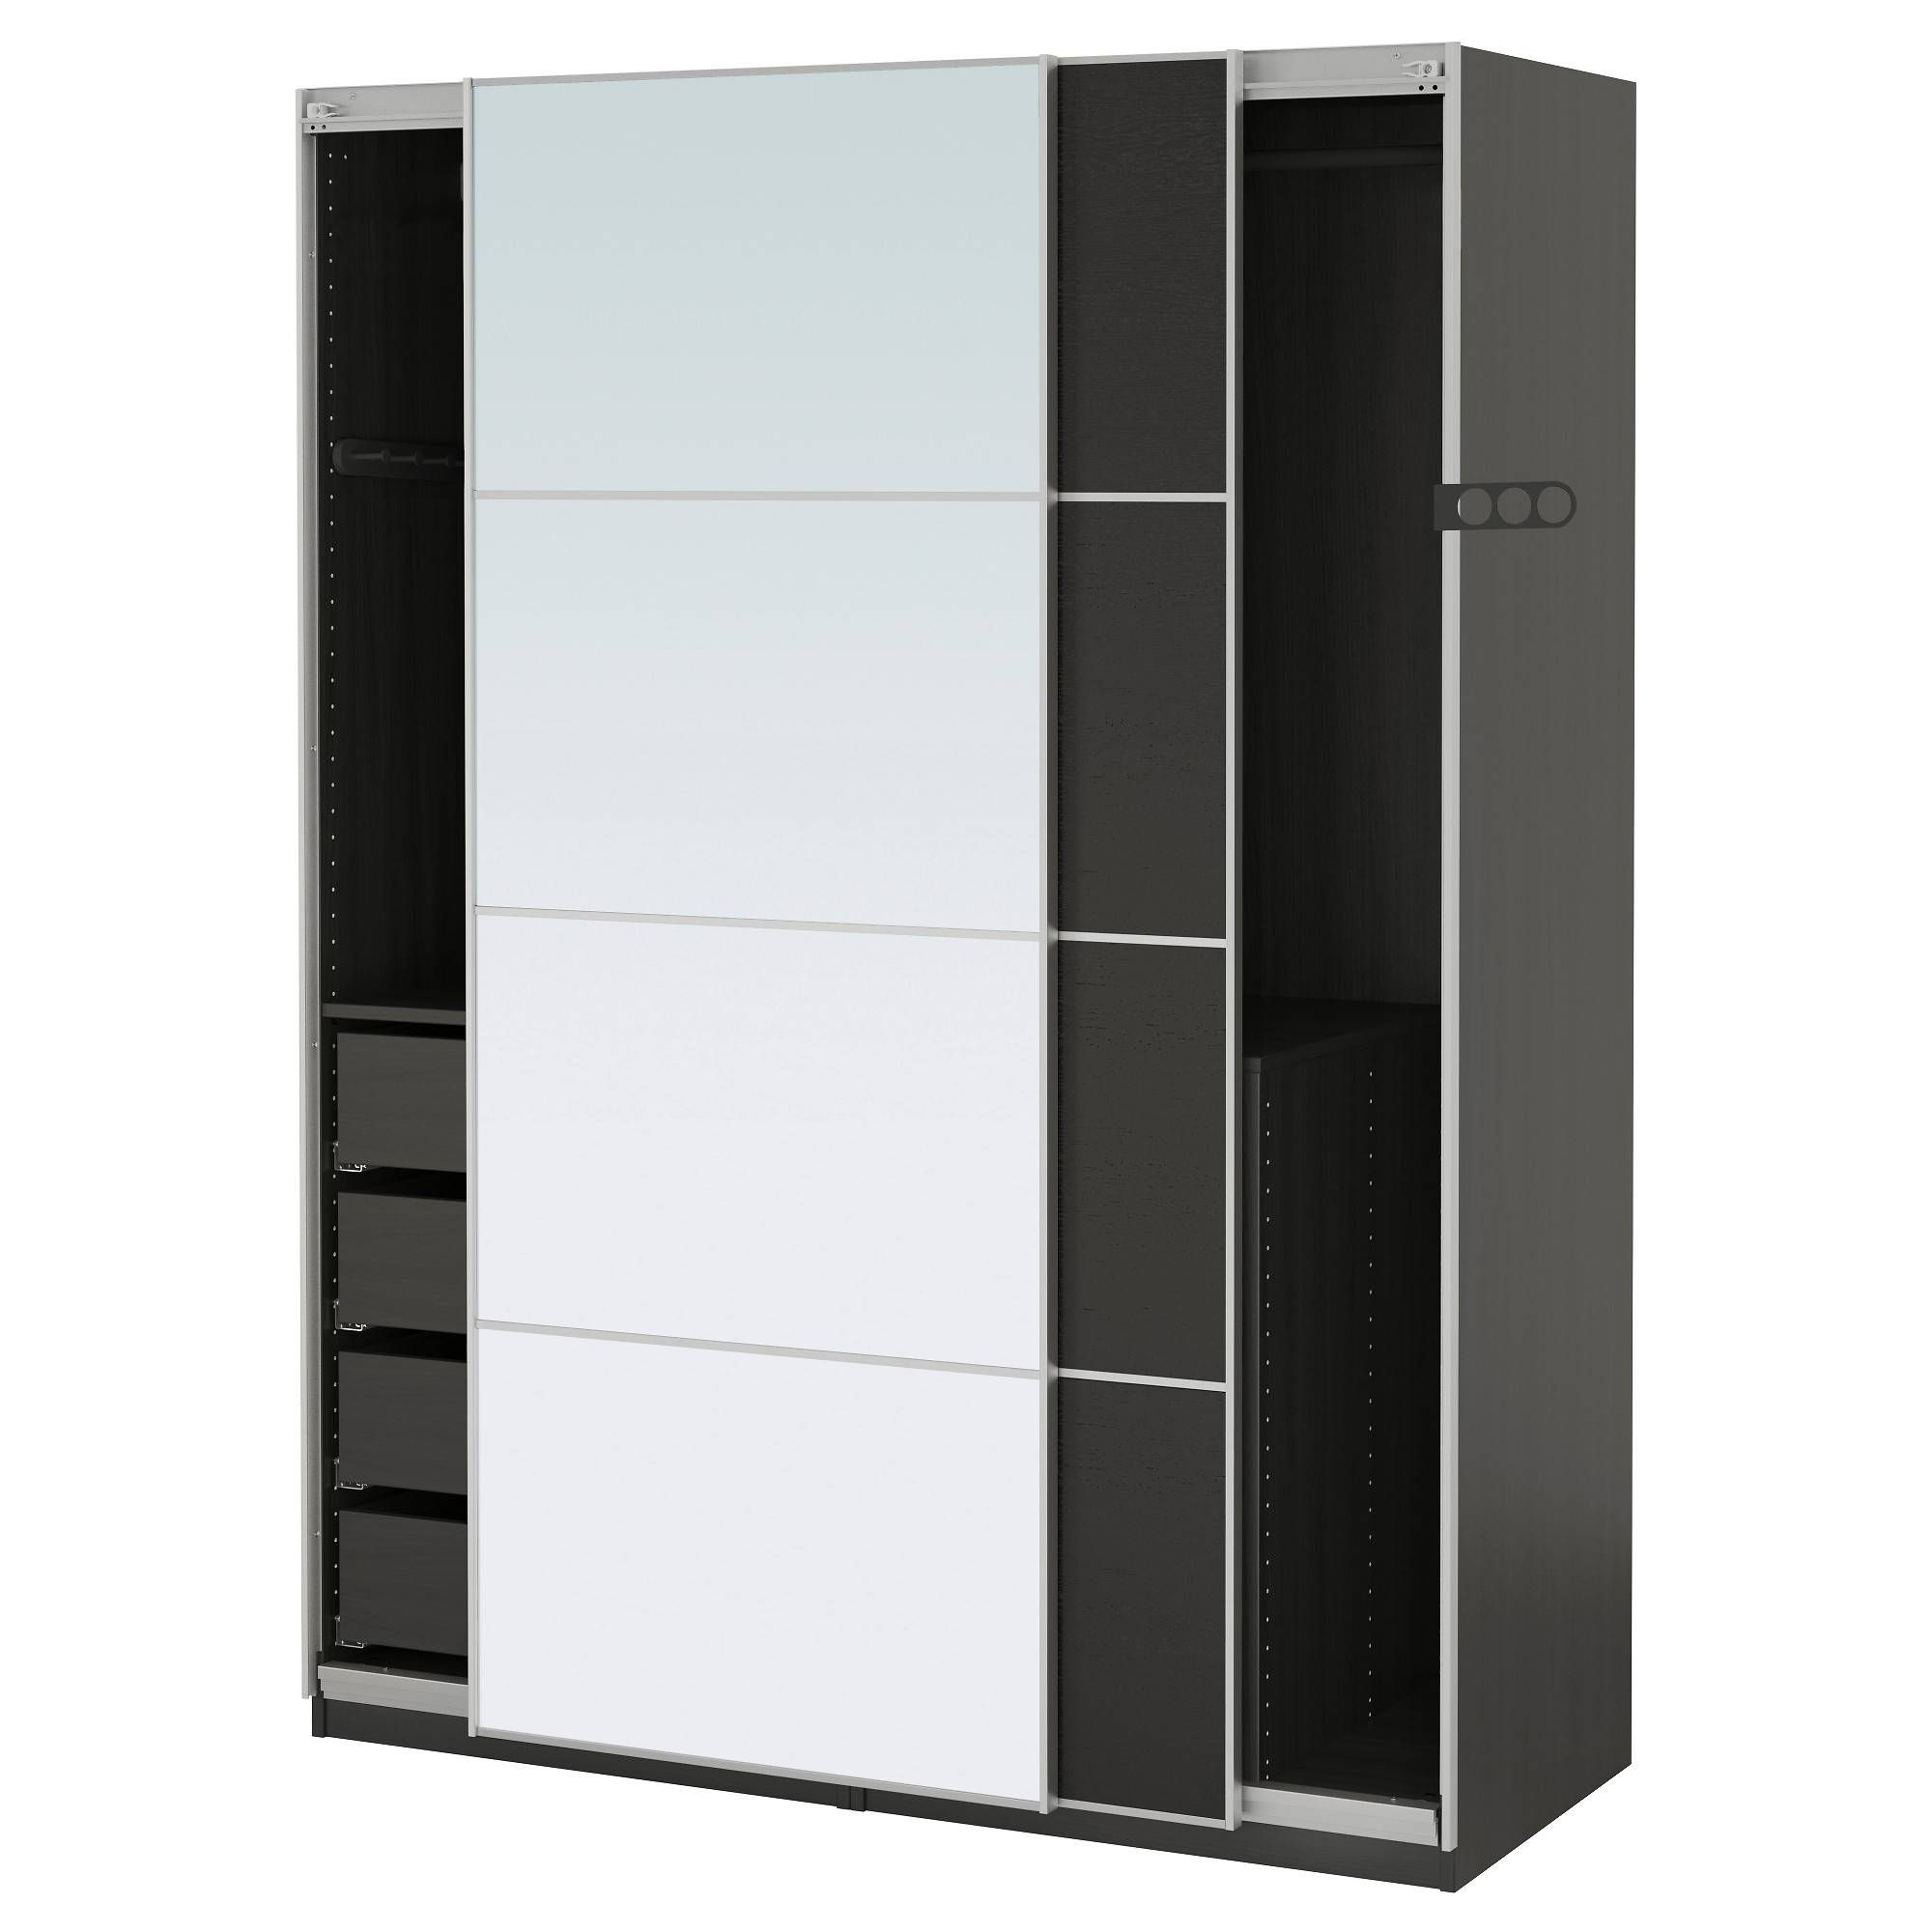 Wardrobes - Pax System - Ikea regarding Wardrobes With Drawers And Shelves (Image 23 of 30)